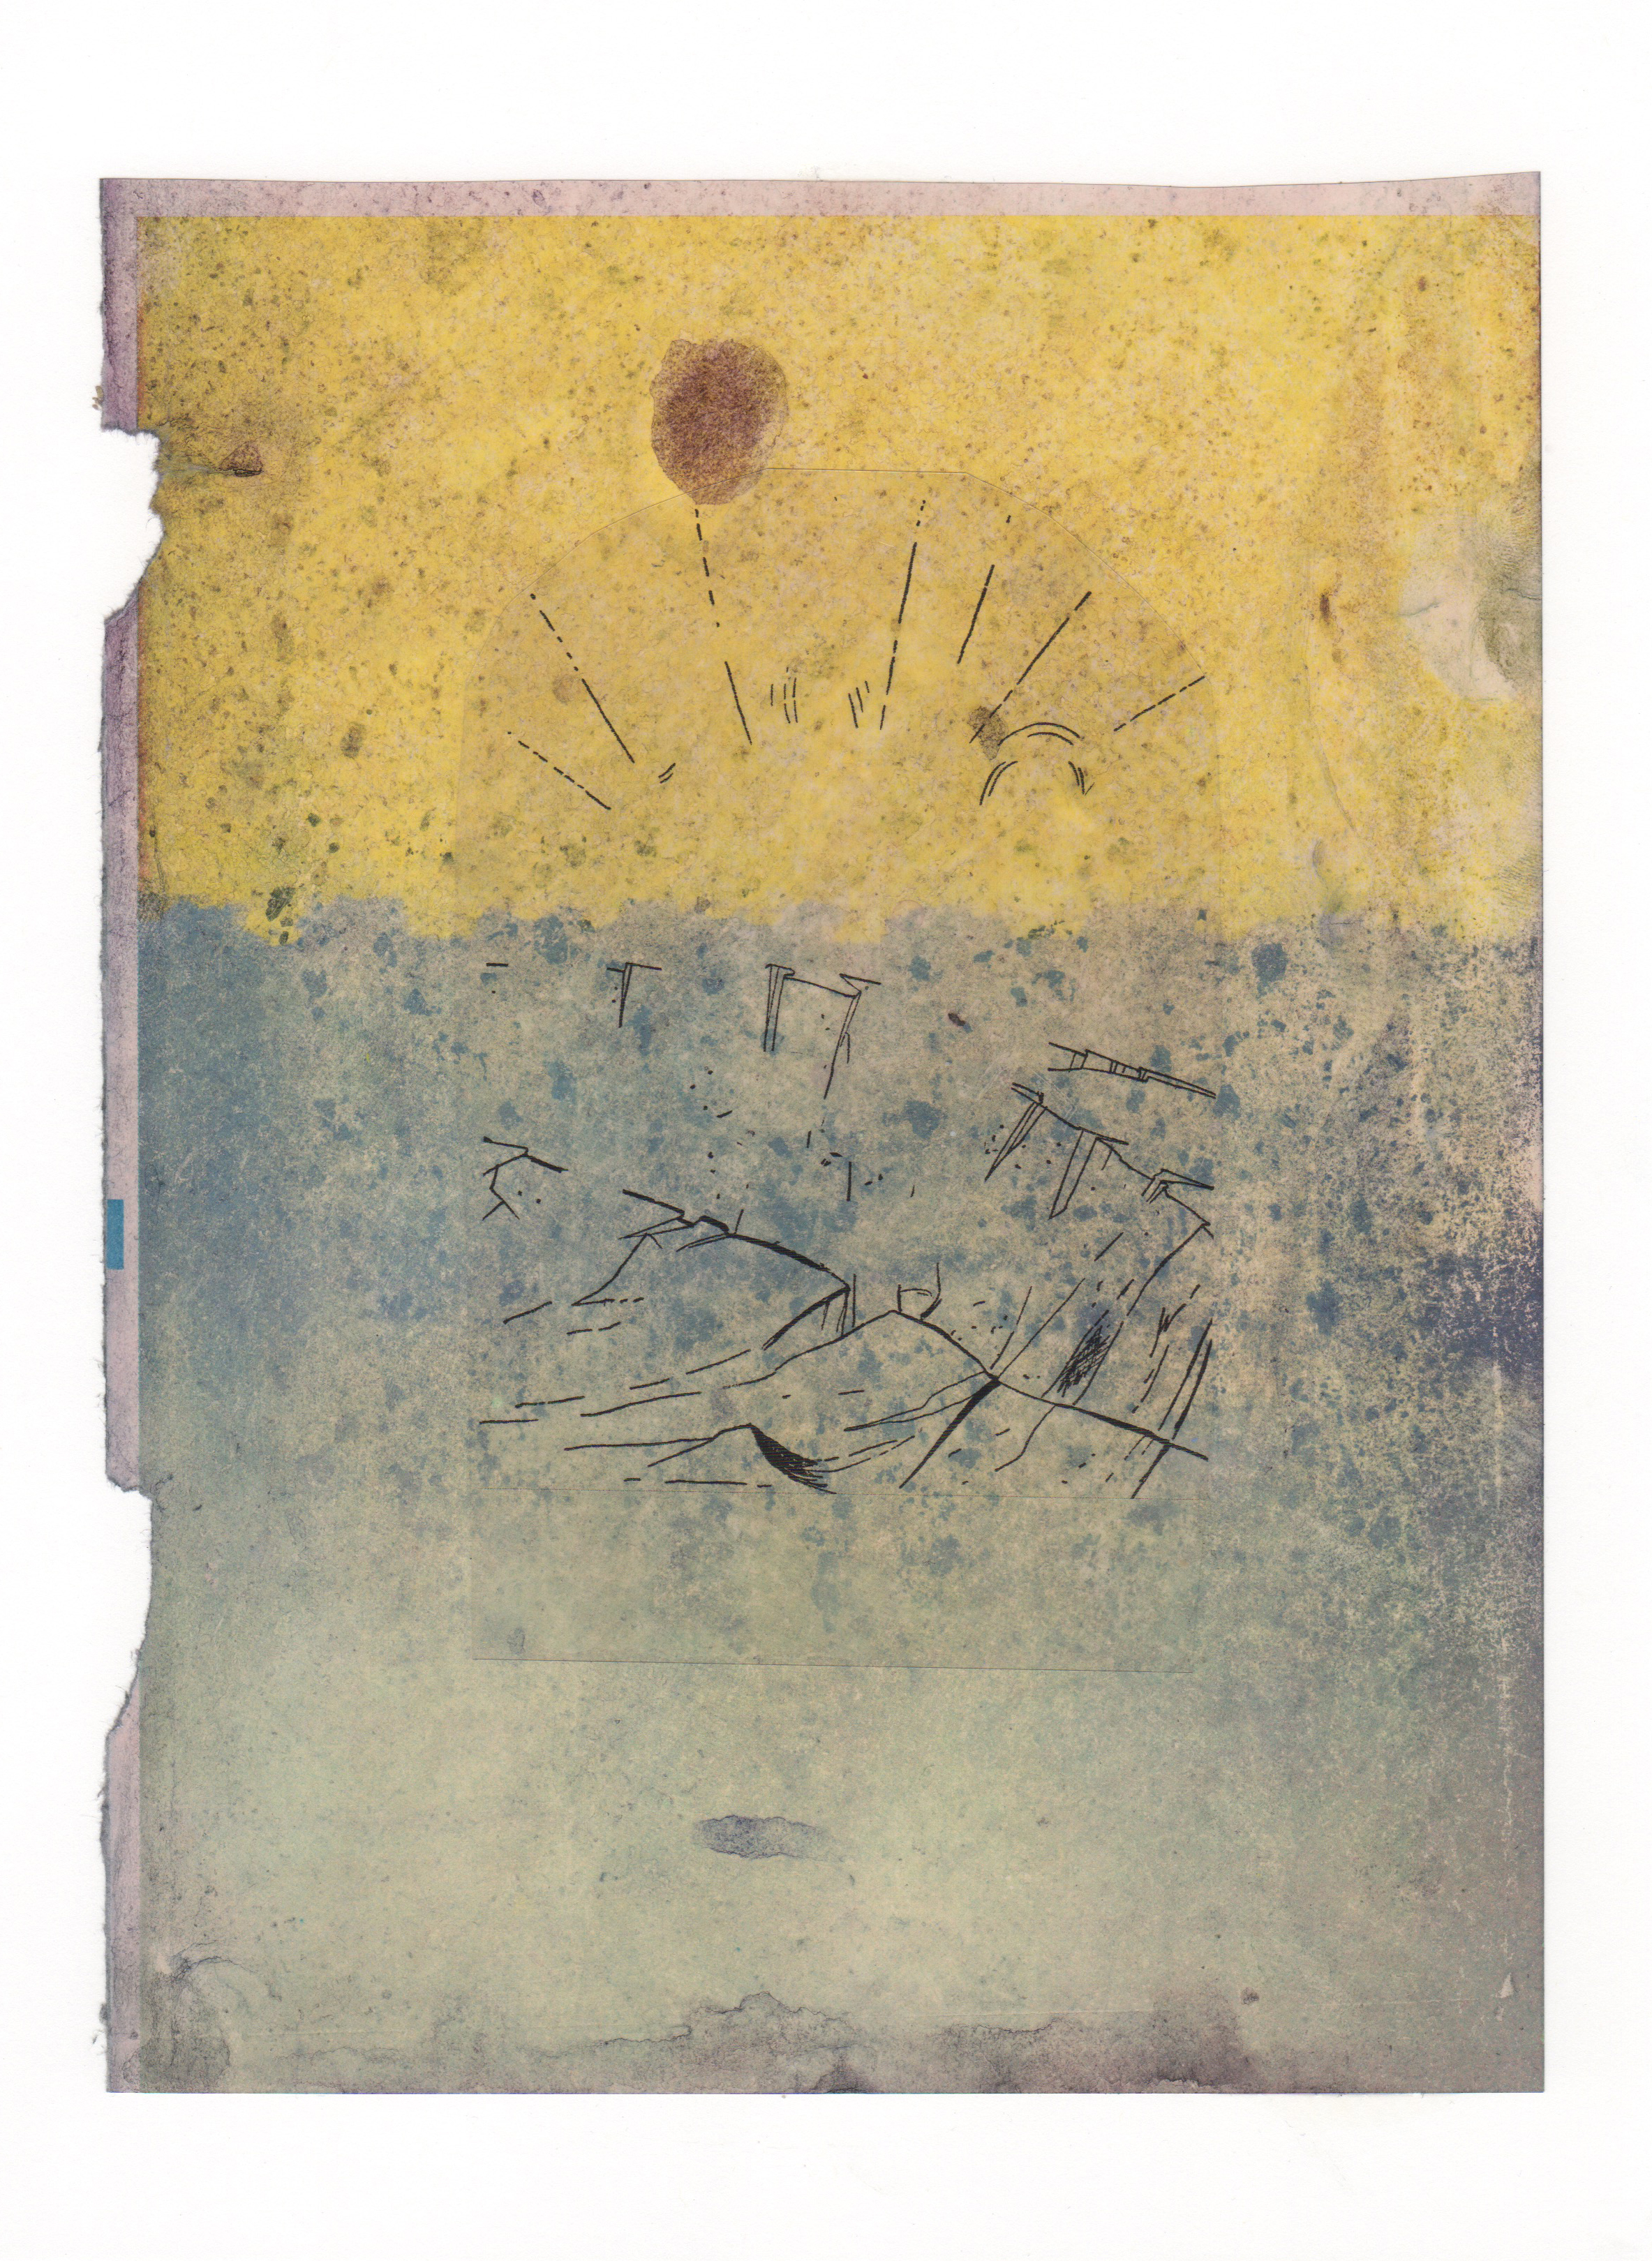 Trenches 2015 acrylic mylar archival ink and paper 8 5 x 11